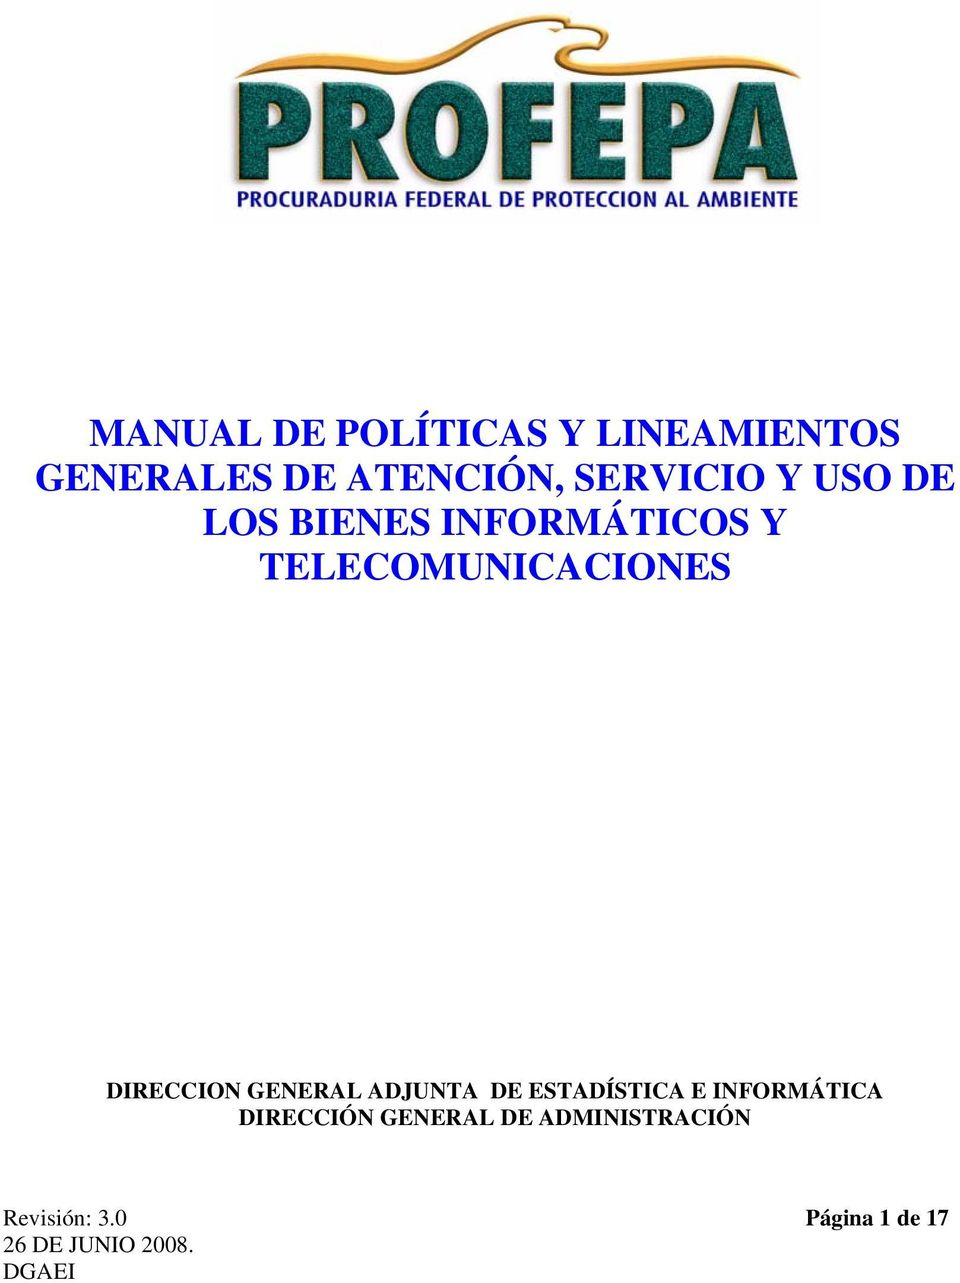 TELECOMUNICACIONES DIRECCION GENERAL ADJUNTA DE ESTADÍSTICA